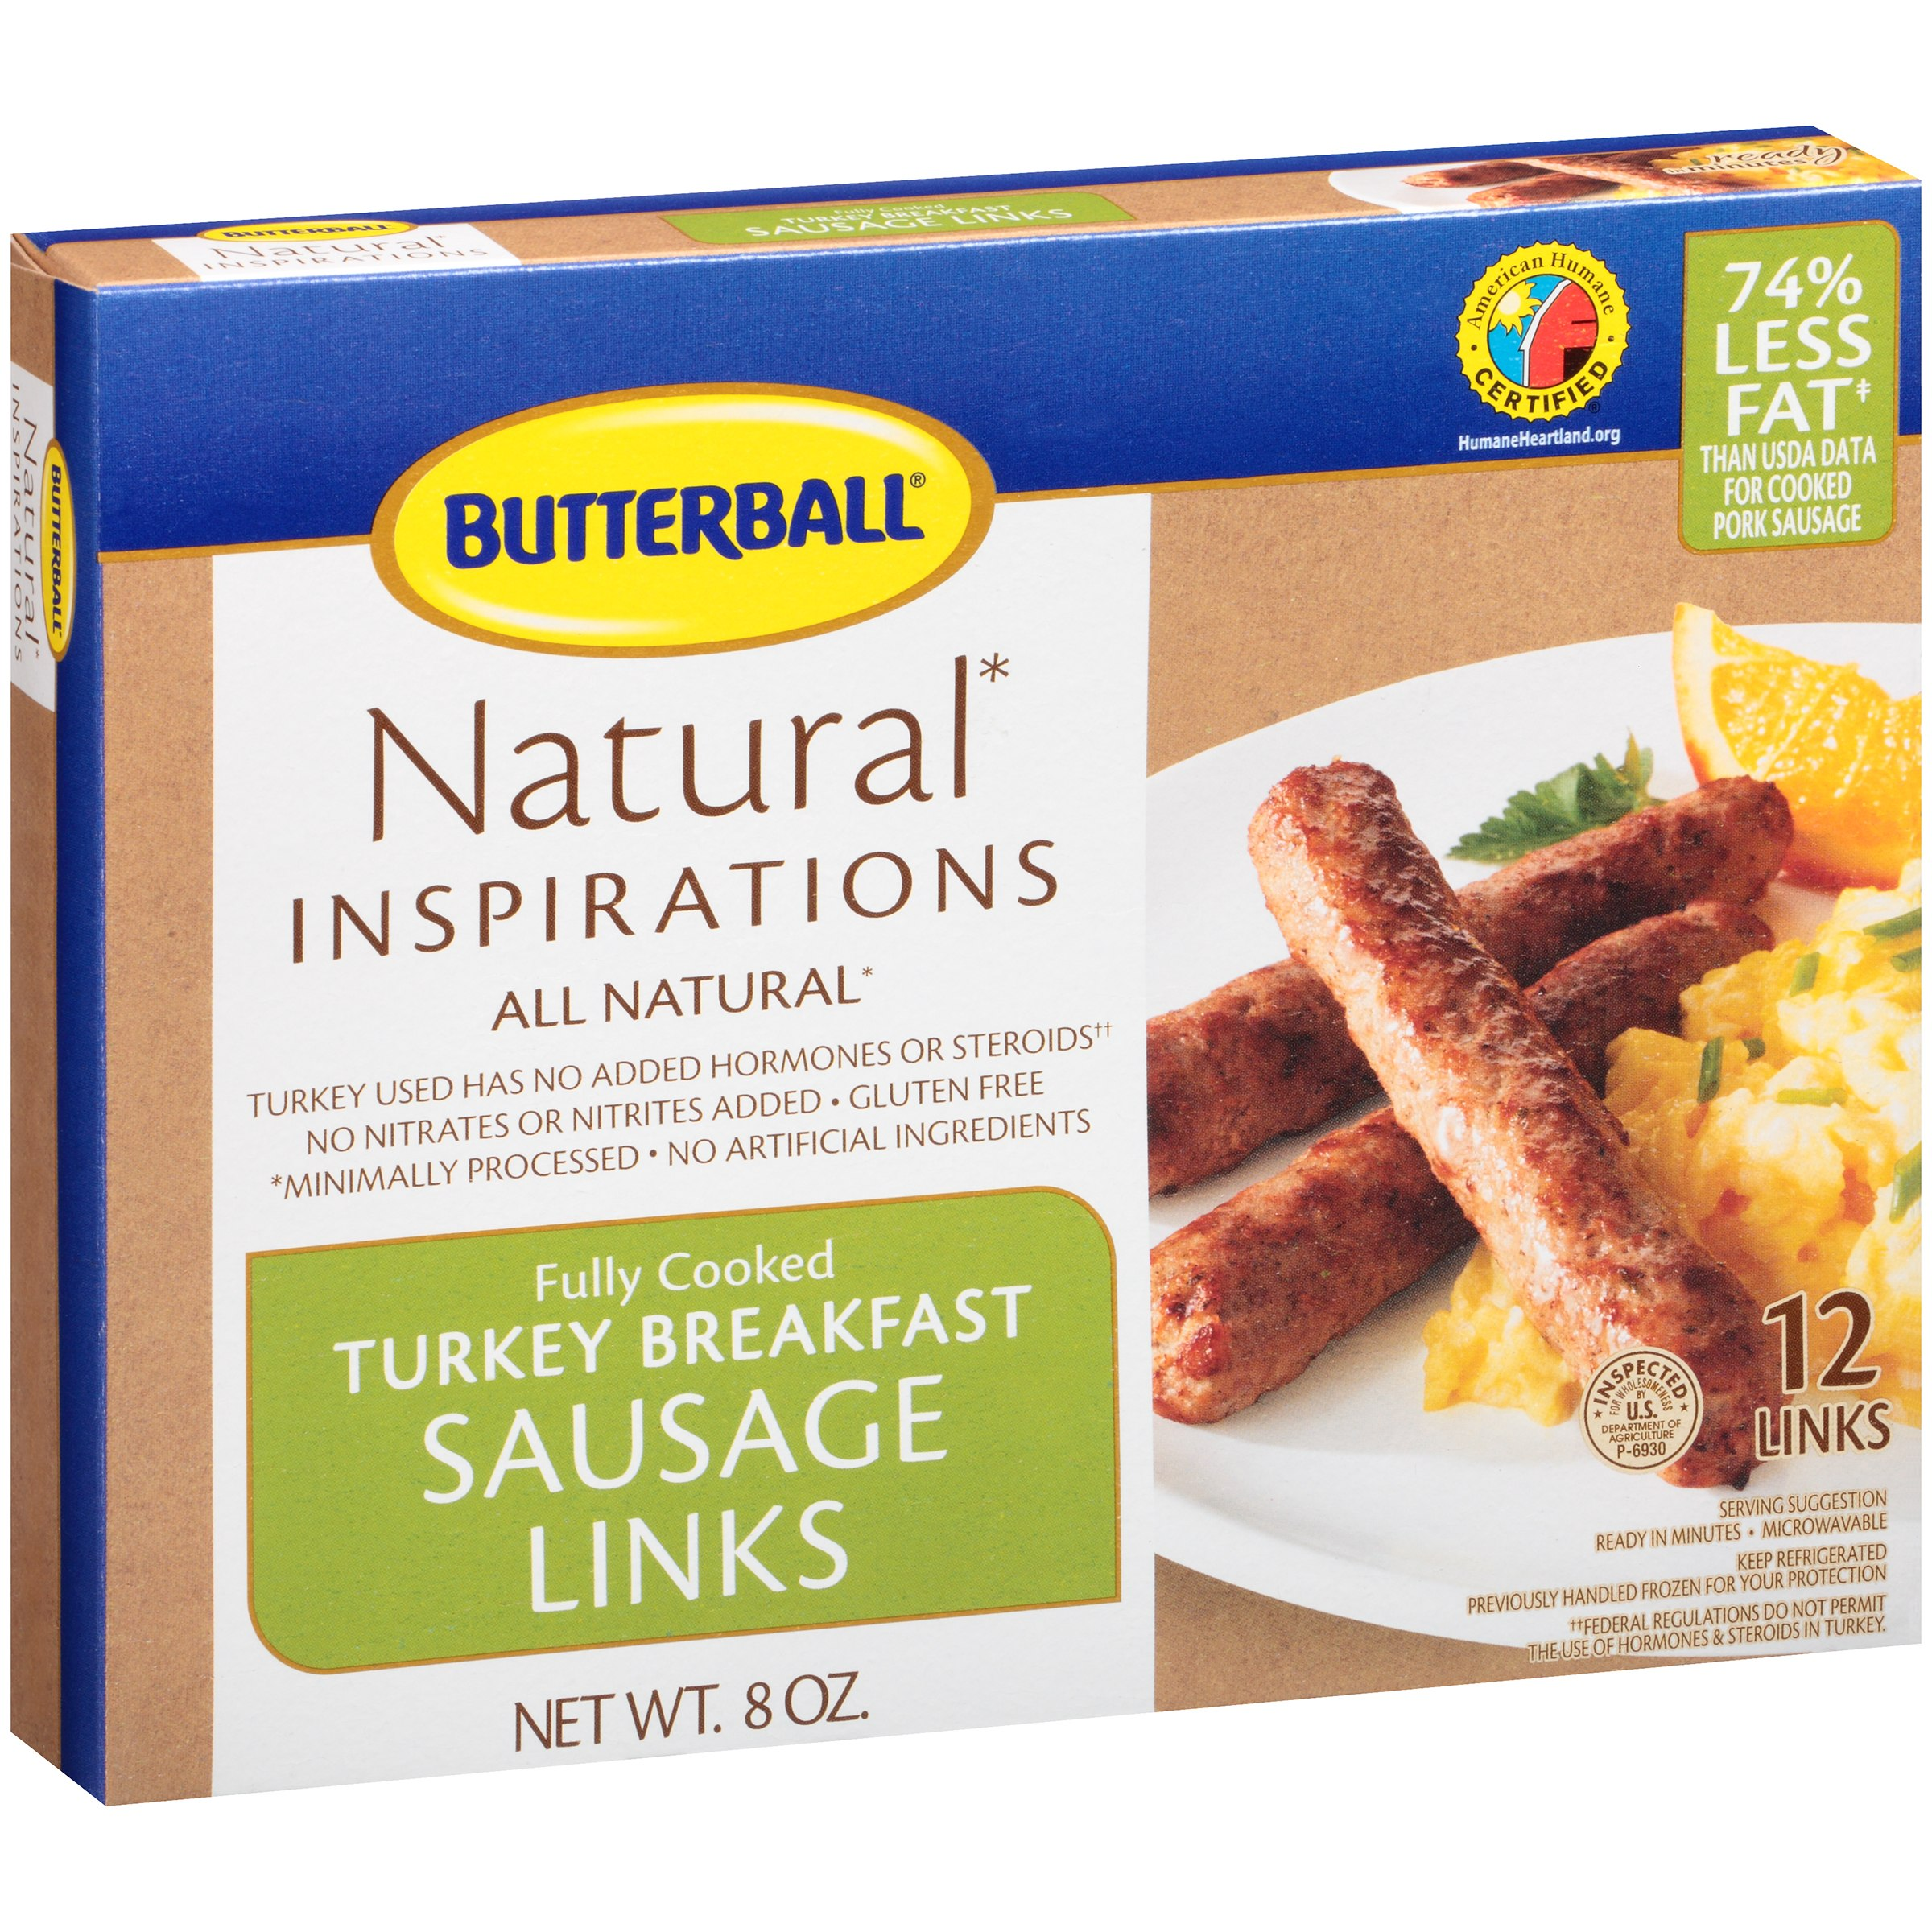 Butterball® Natural Inspirations Turkey Breakfast Sausage Links 8 oz. Box